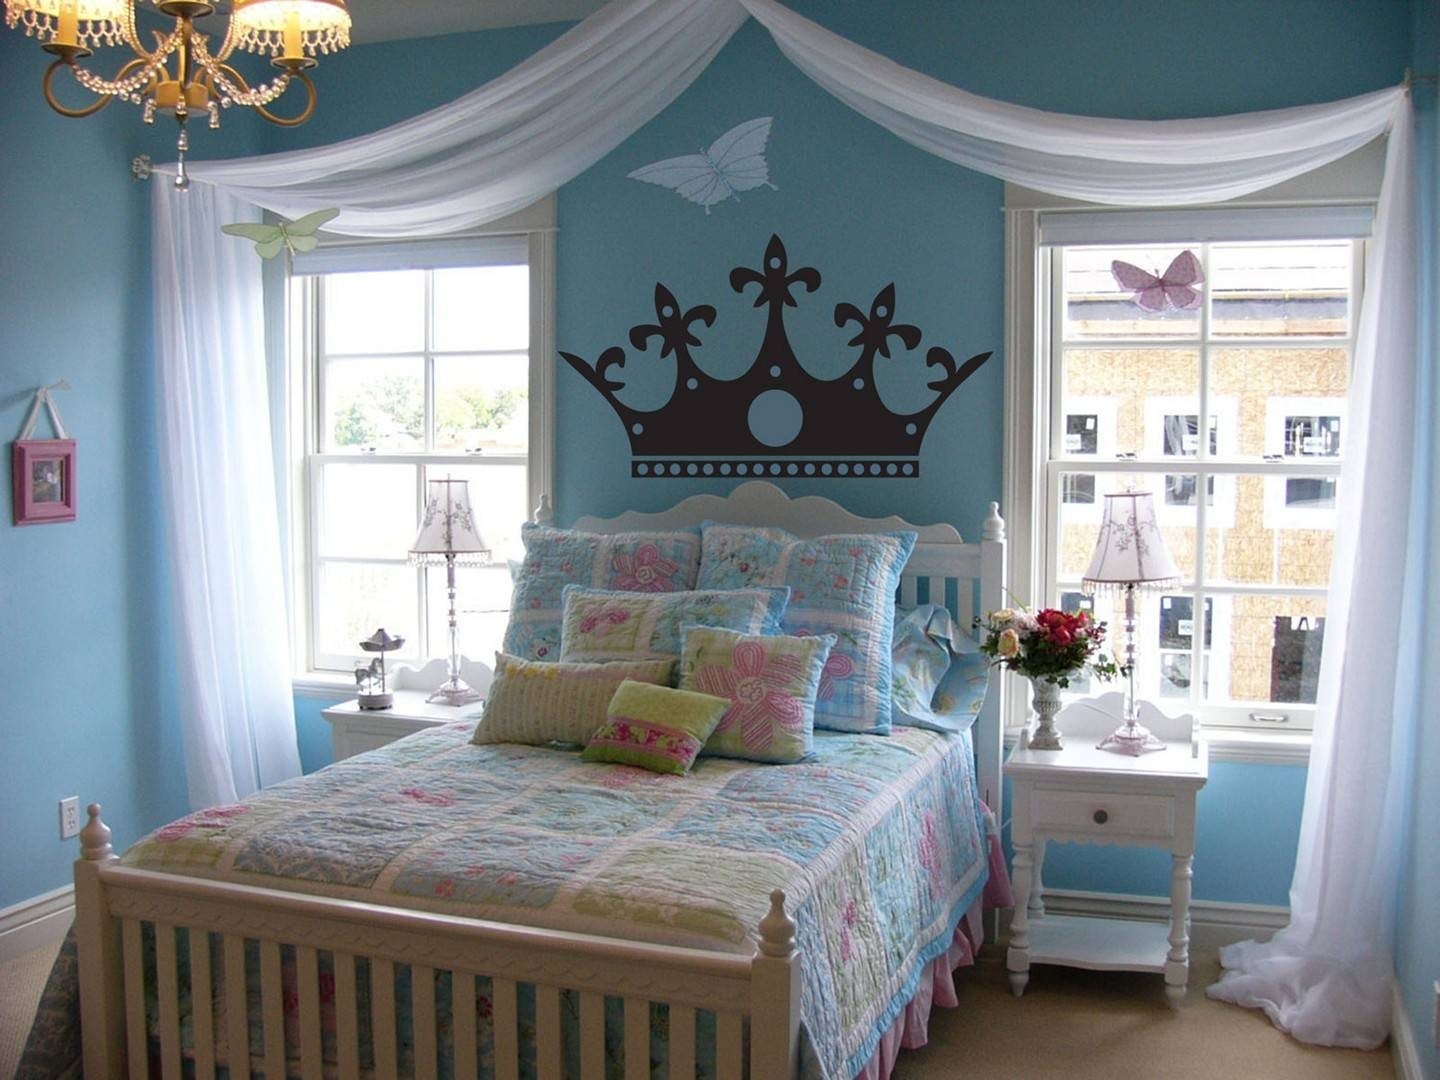 3D Princess Crown Wall Art Decor – Homestylediary Within Best And Newest 3D Princess Crown Wall Art Decor (View 1 of 20)